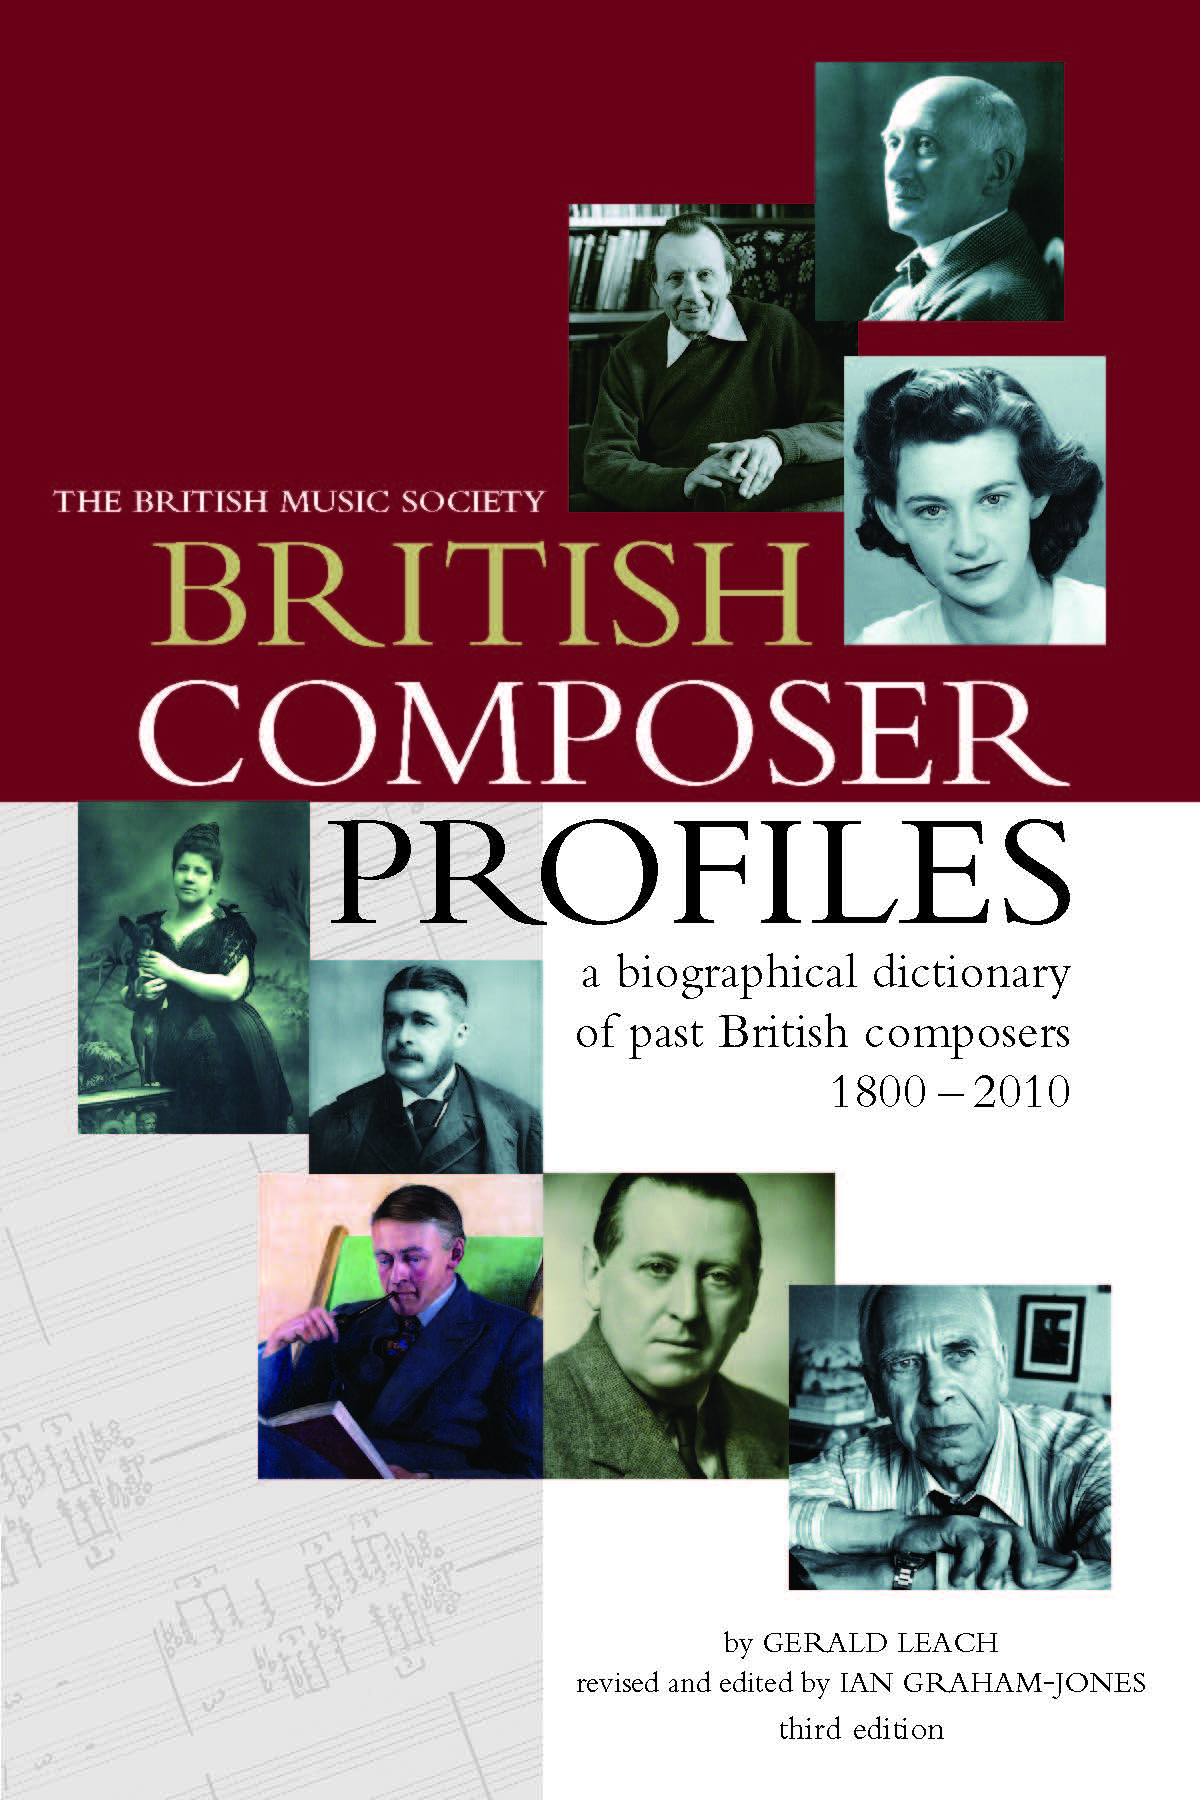 British Composer Profiles